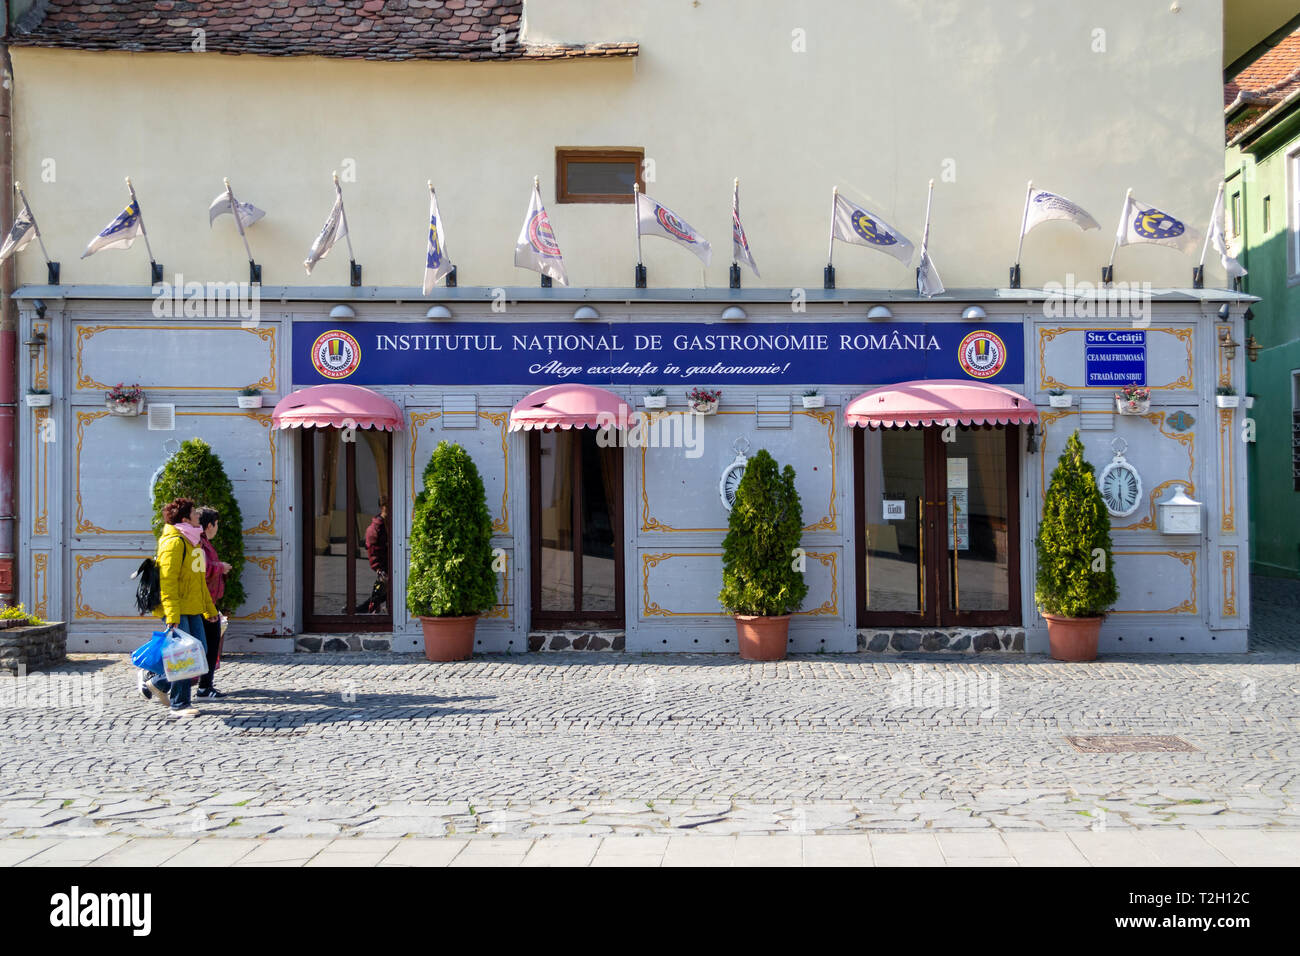 Sibiu, Romania - March 25, 2019: Front entrance and facade of 'Institutul National de Gastronomie Romania', a culinary organization that promotes trad - Stock Image